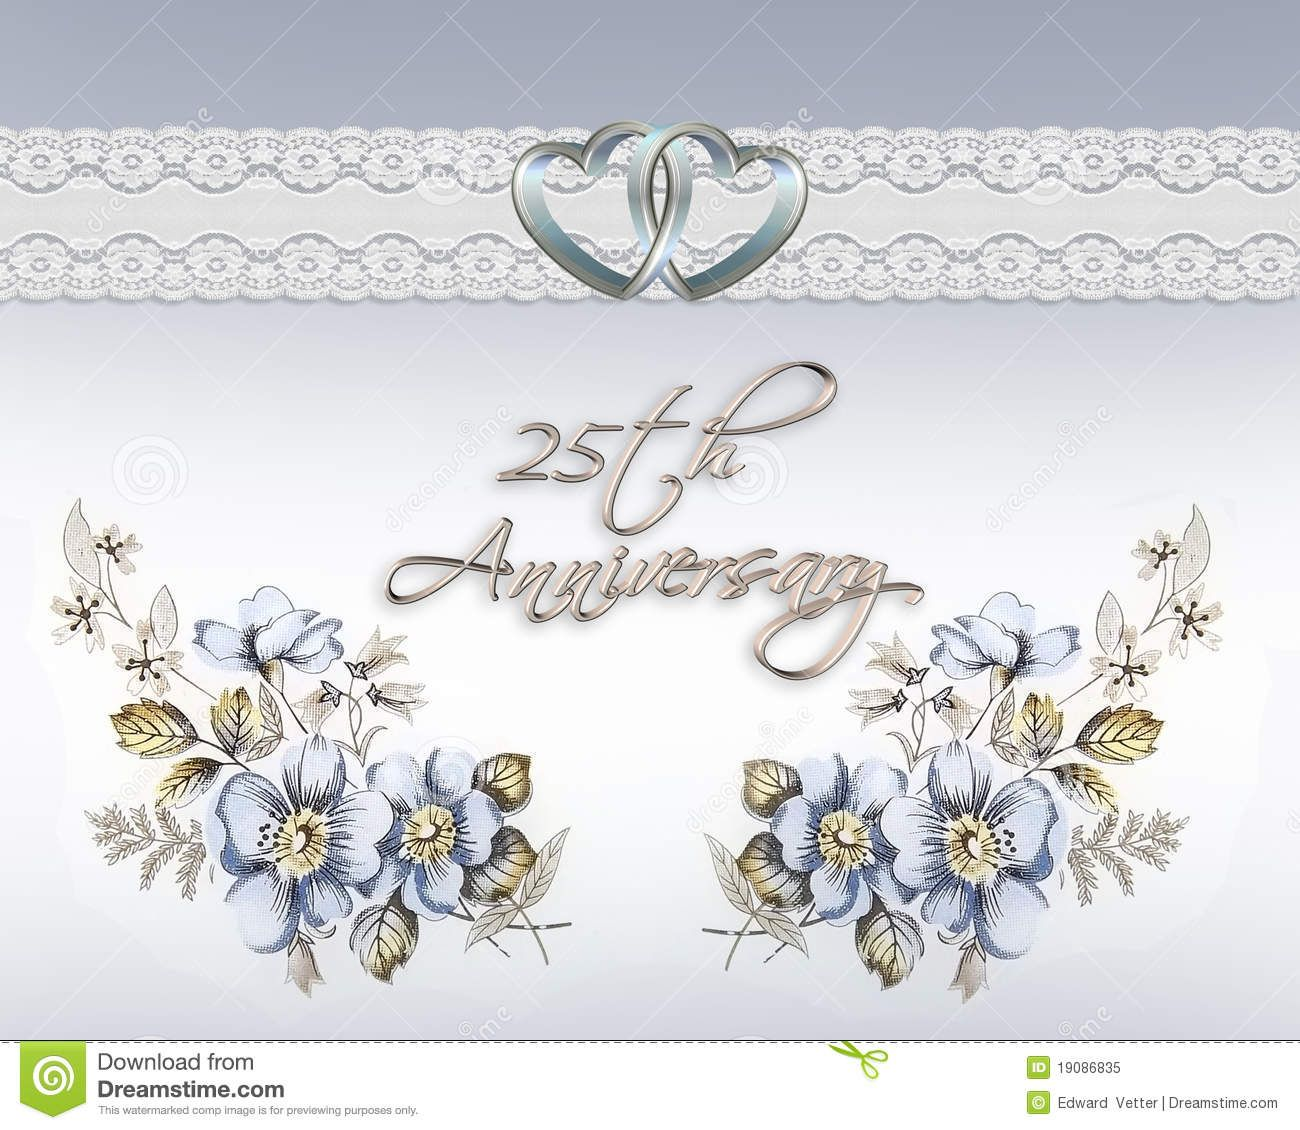 25 wedding anniversary 25th wedding anniversary cards free download Google Search